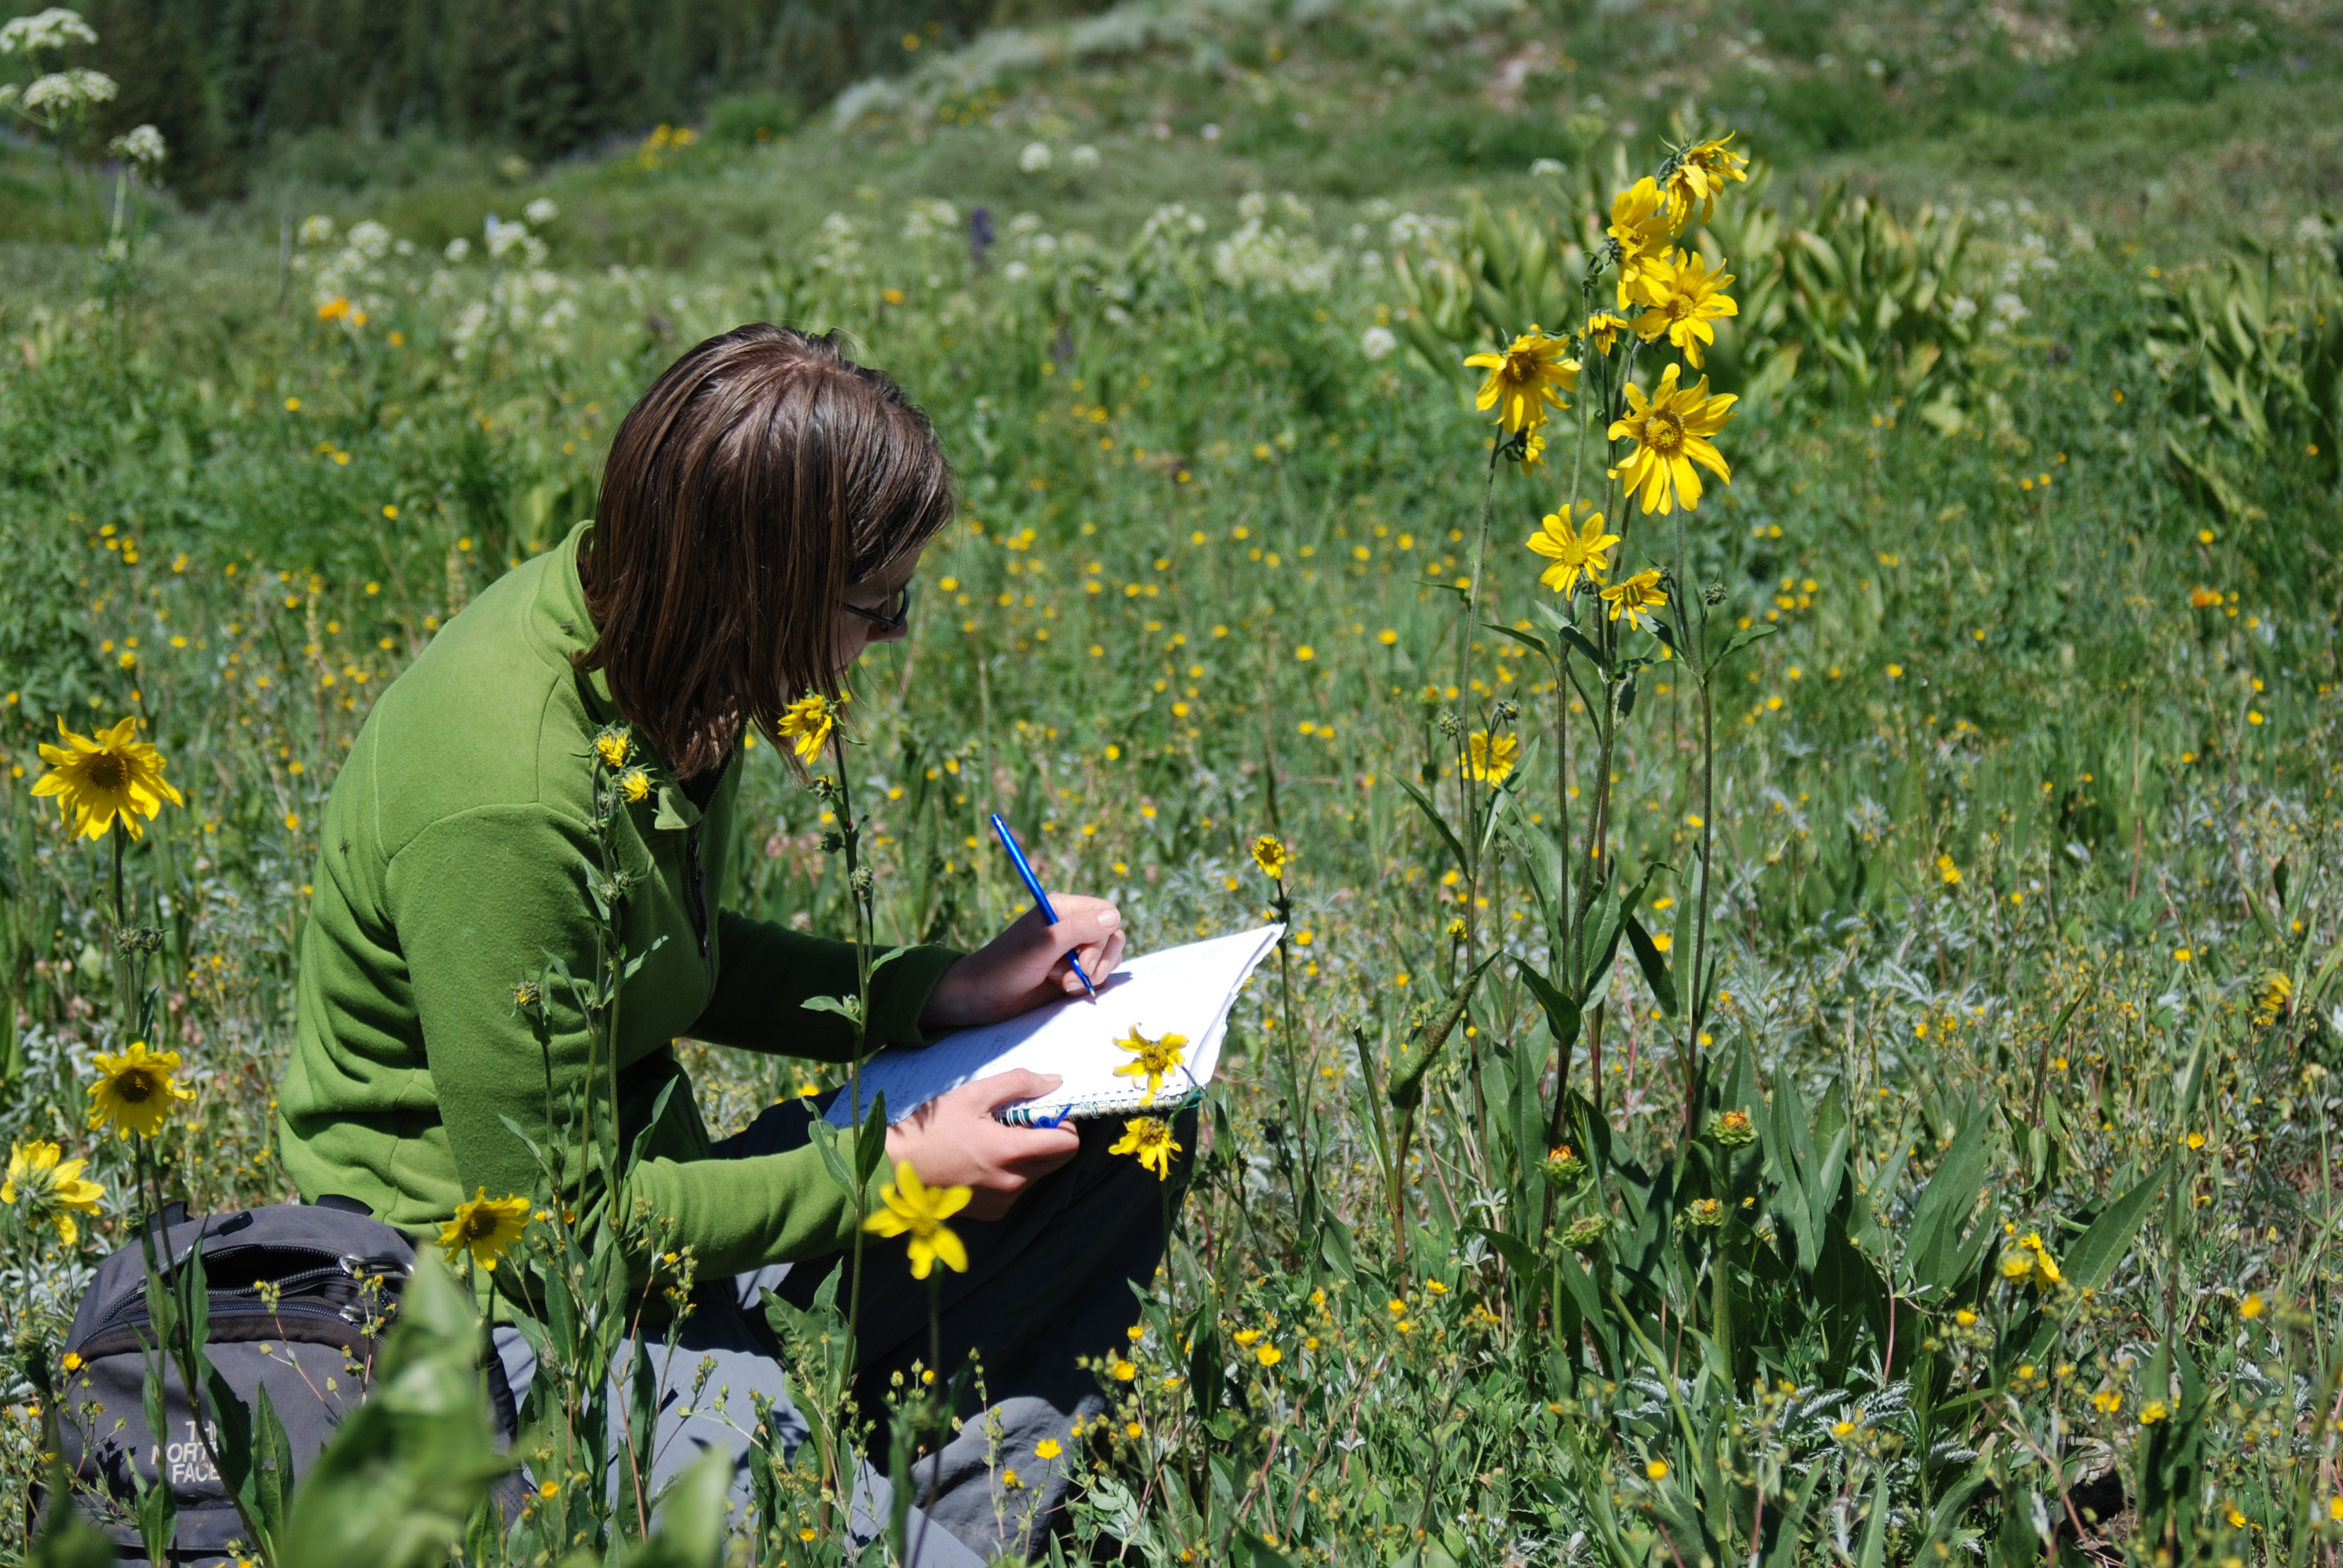 An woman seated in a field of wildflowers records observations